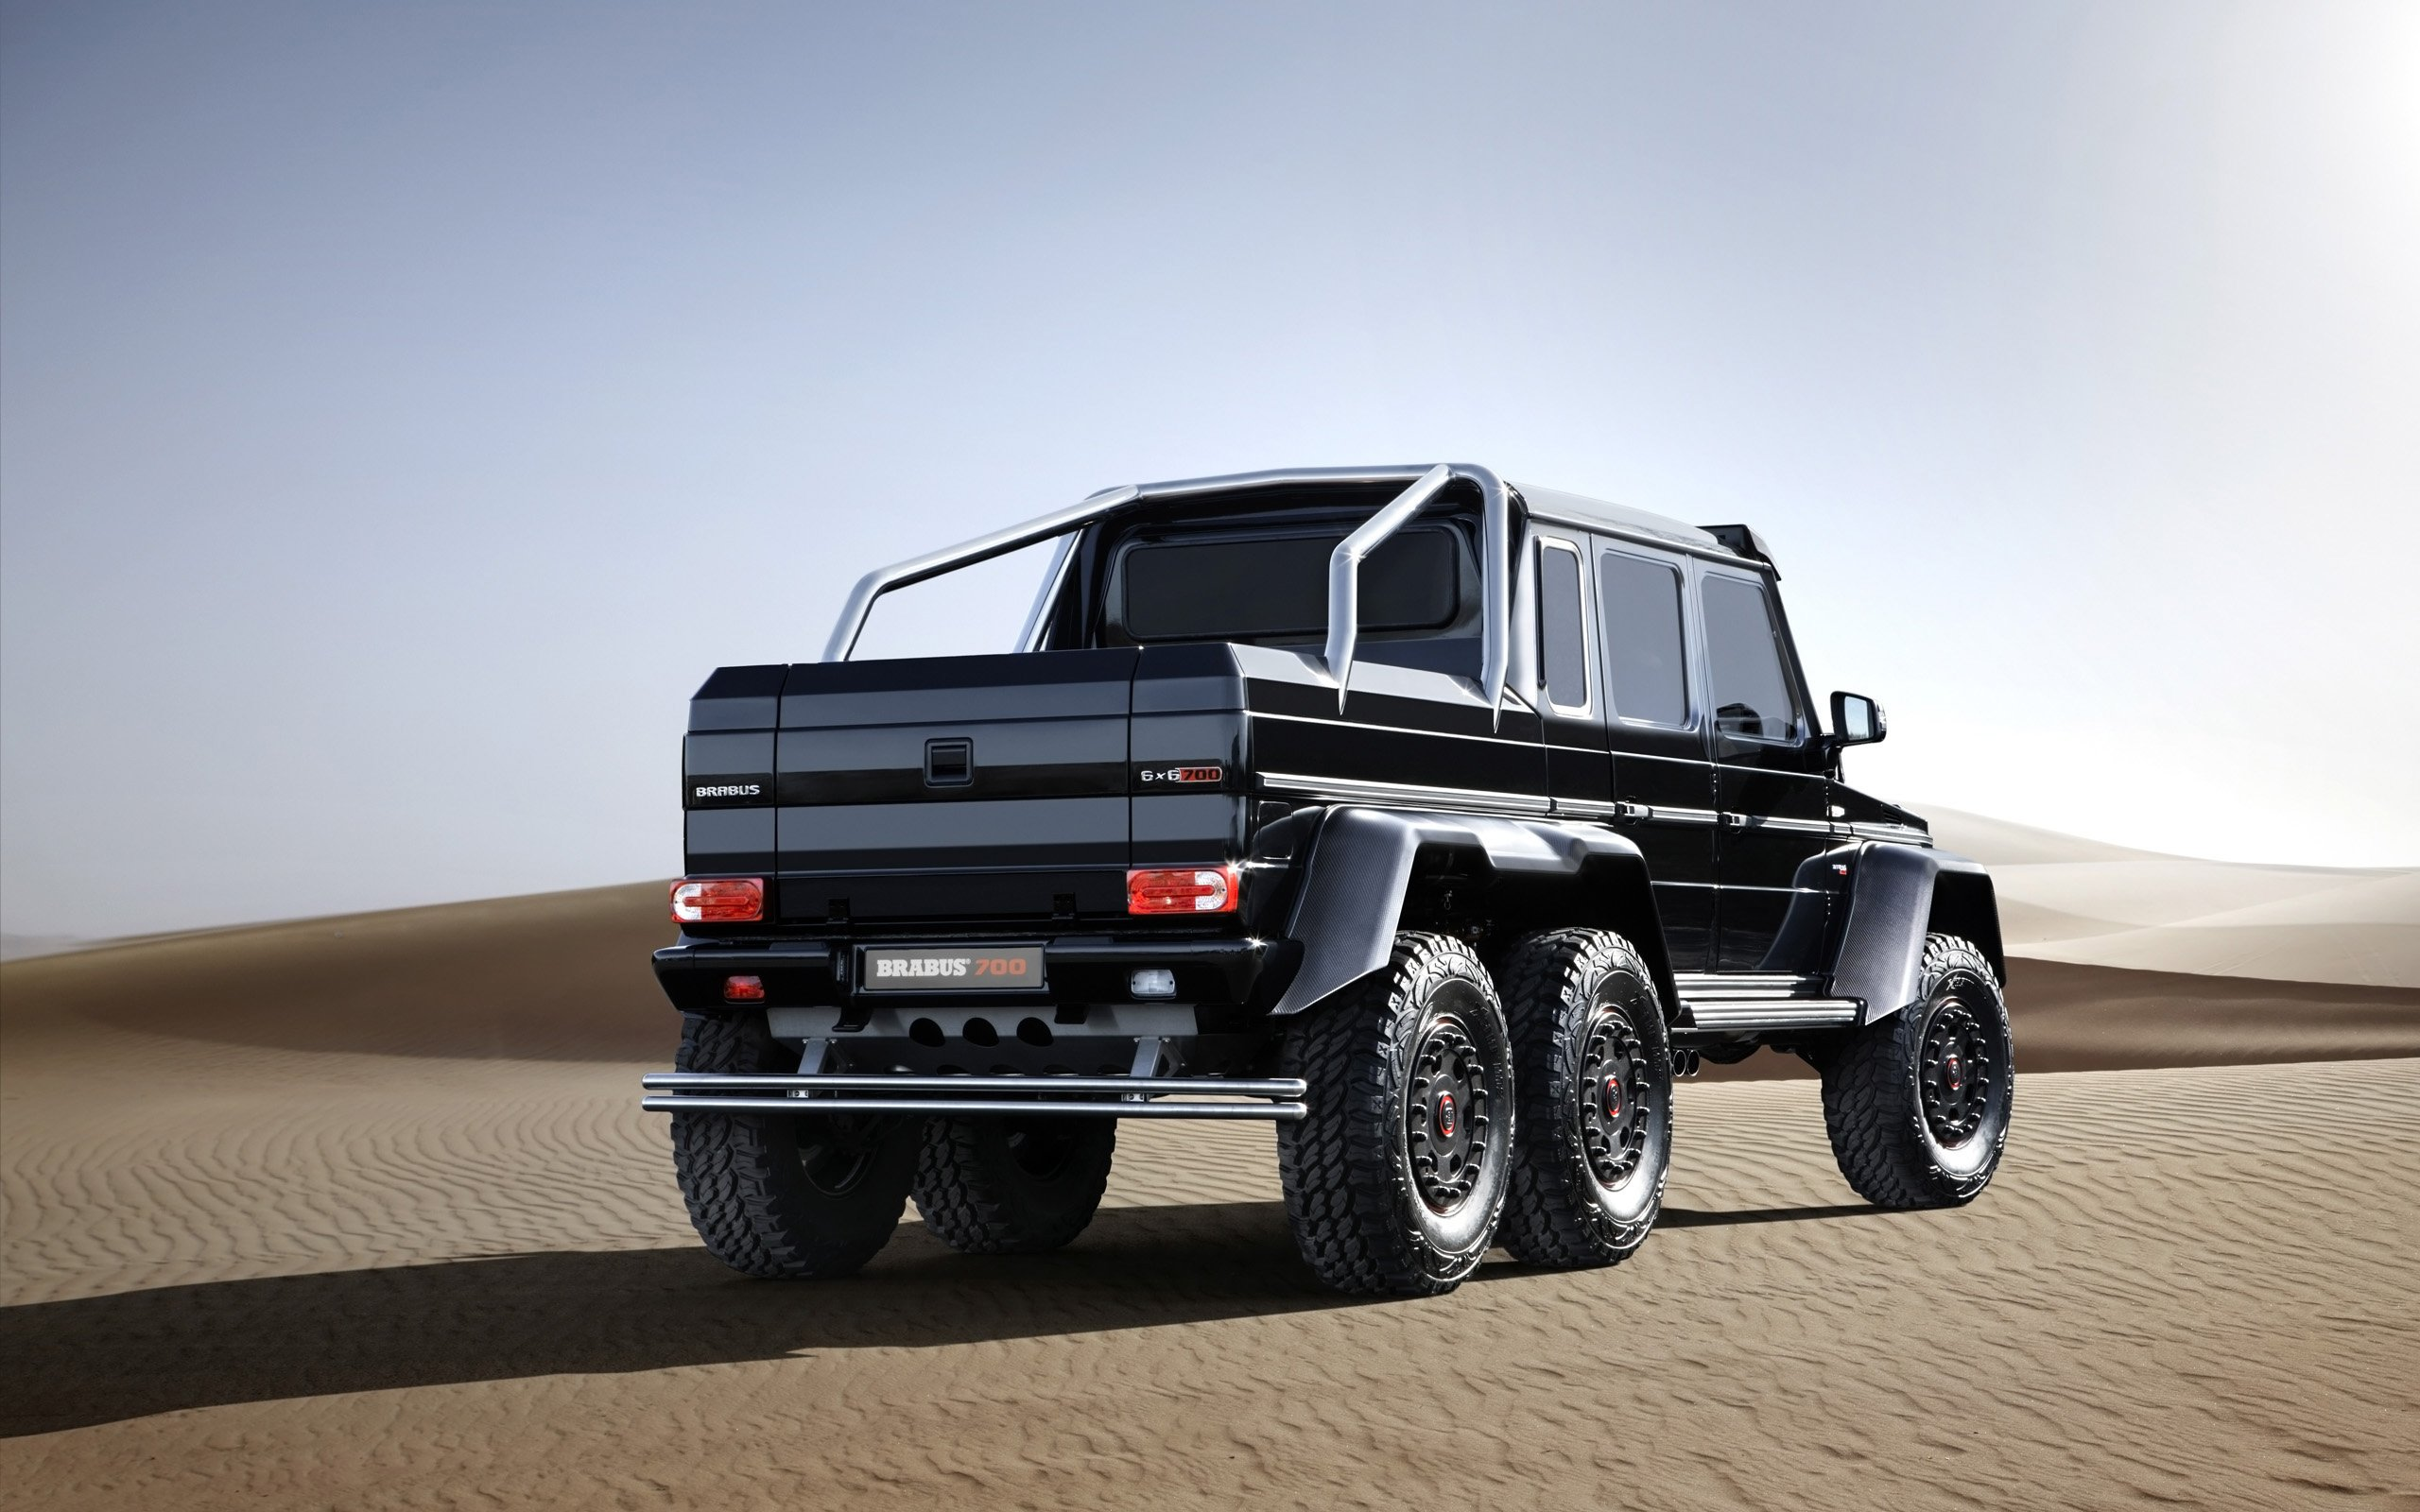 2014 brabus mercedes benz b63s 700 6x6 pickup suv tuning offroad f wallpaper 2560x1600. Black Bedroom Furniture Sets. Home Design Ideas